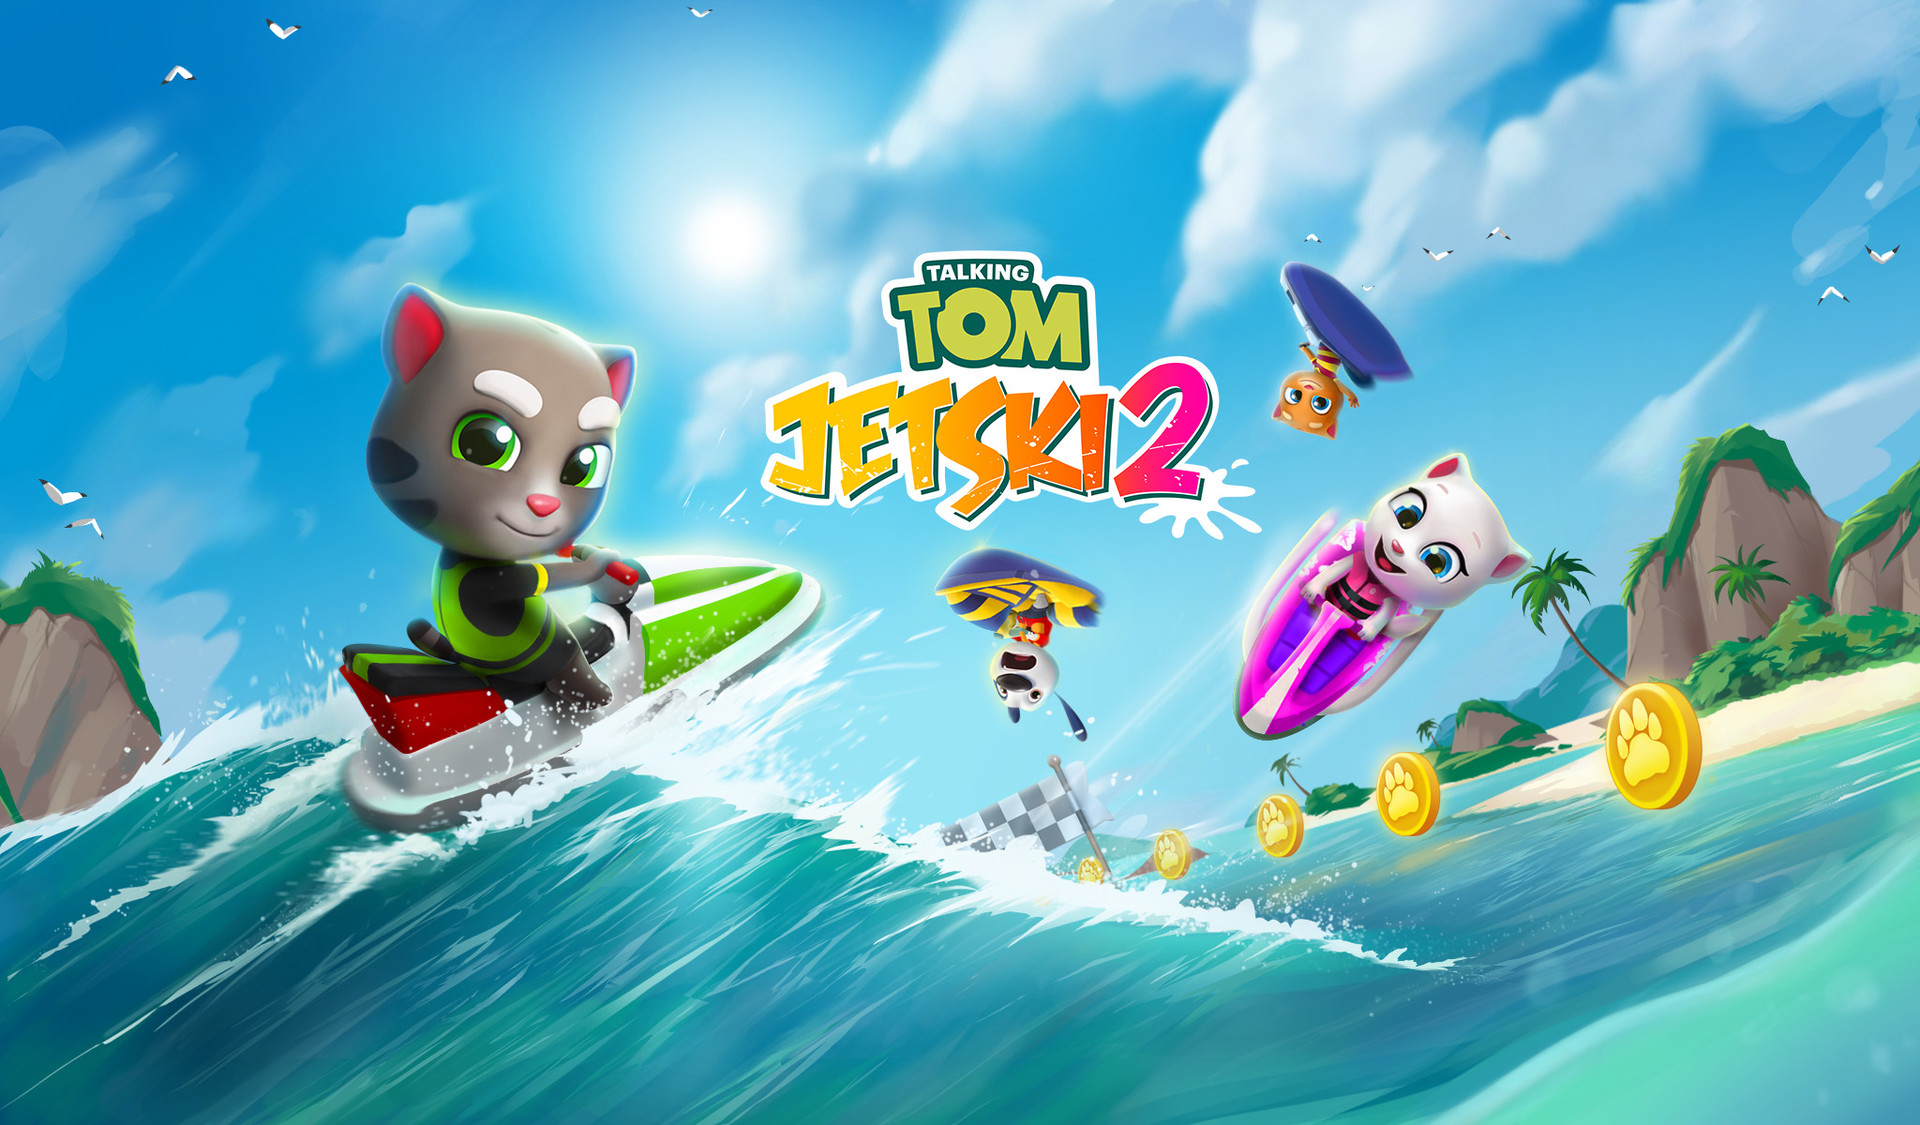 talking tom jetski 2 spiel logo